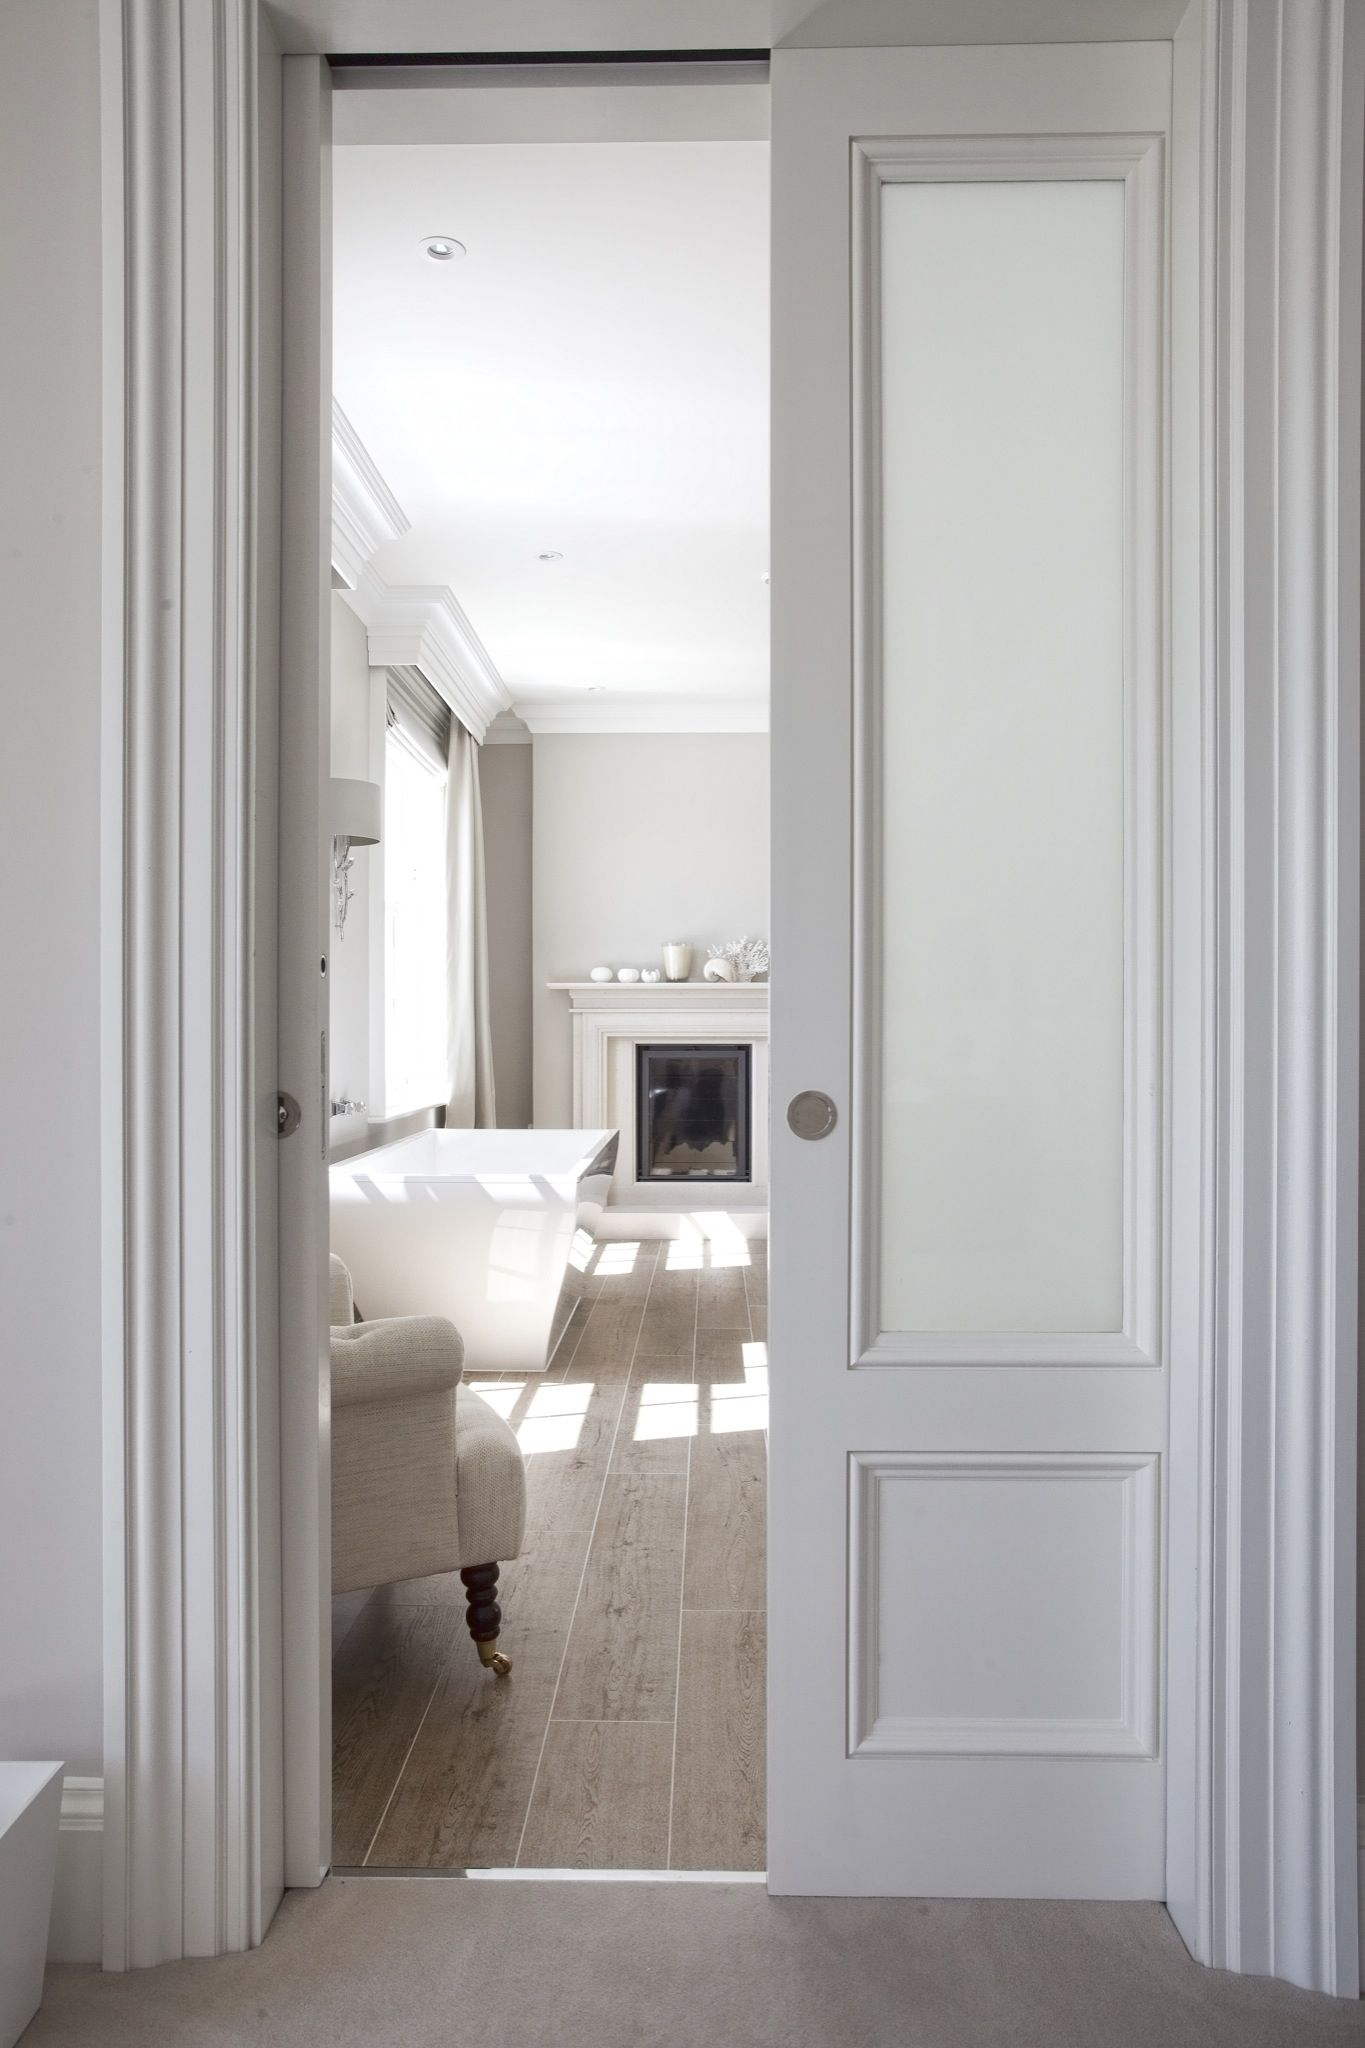 Design inspiration: interior doors | Pocket doors and Doors